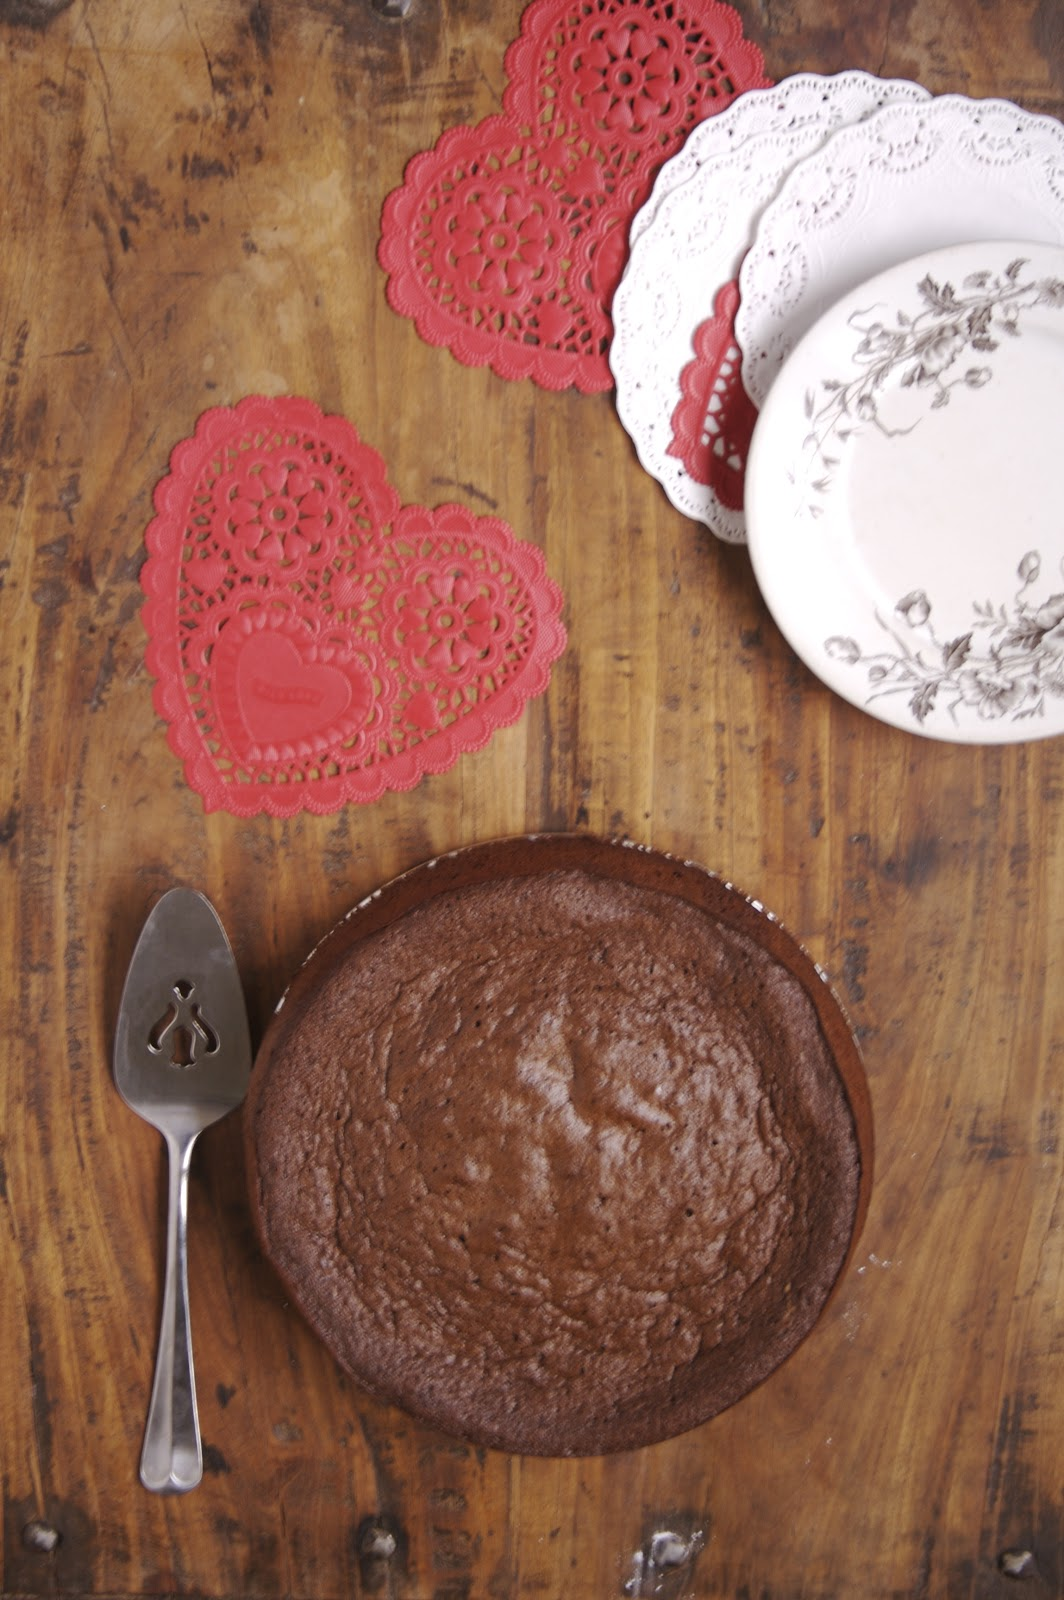 Flourless chocolate cake. A rich and fudgy dessert!